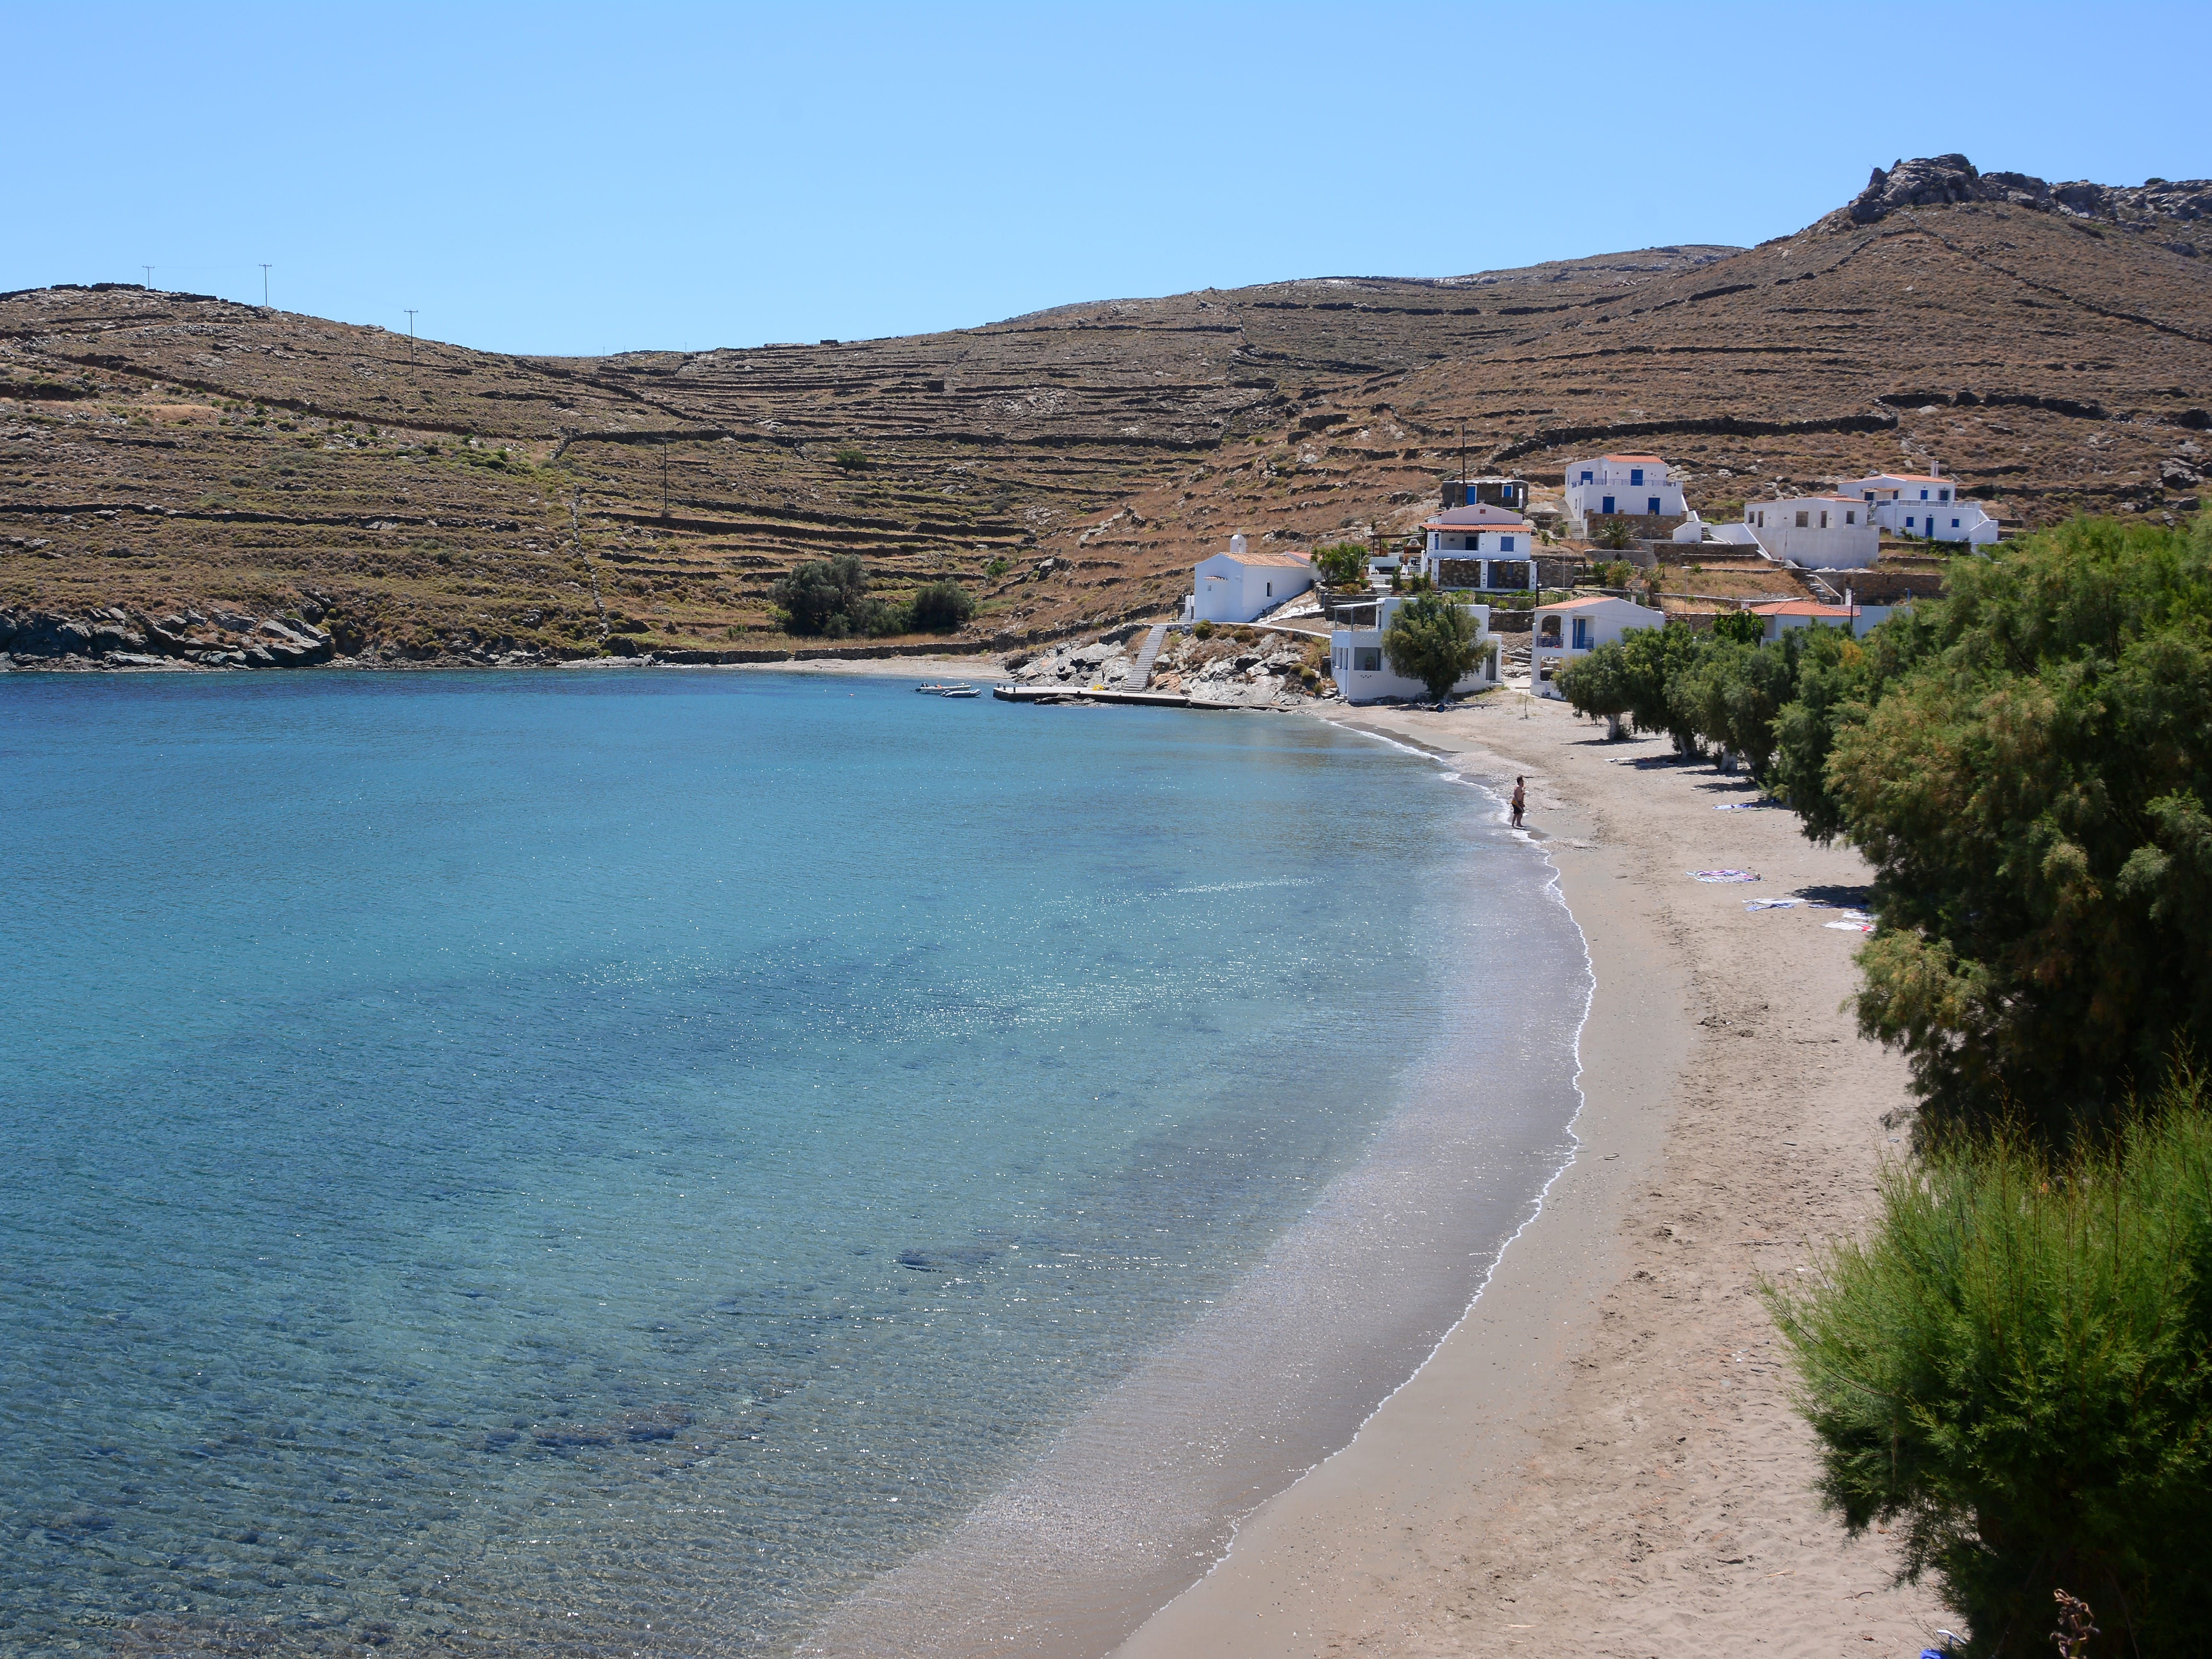 Lefkes Beach is one of the many unpretentious shorelines which make Kythnos a favorite among island-hoppers.